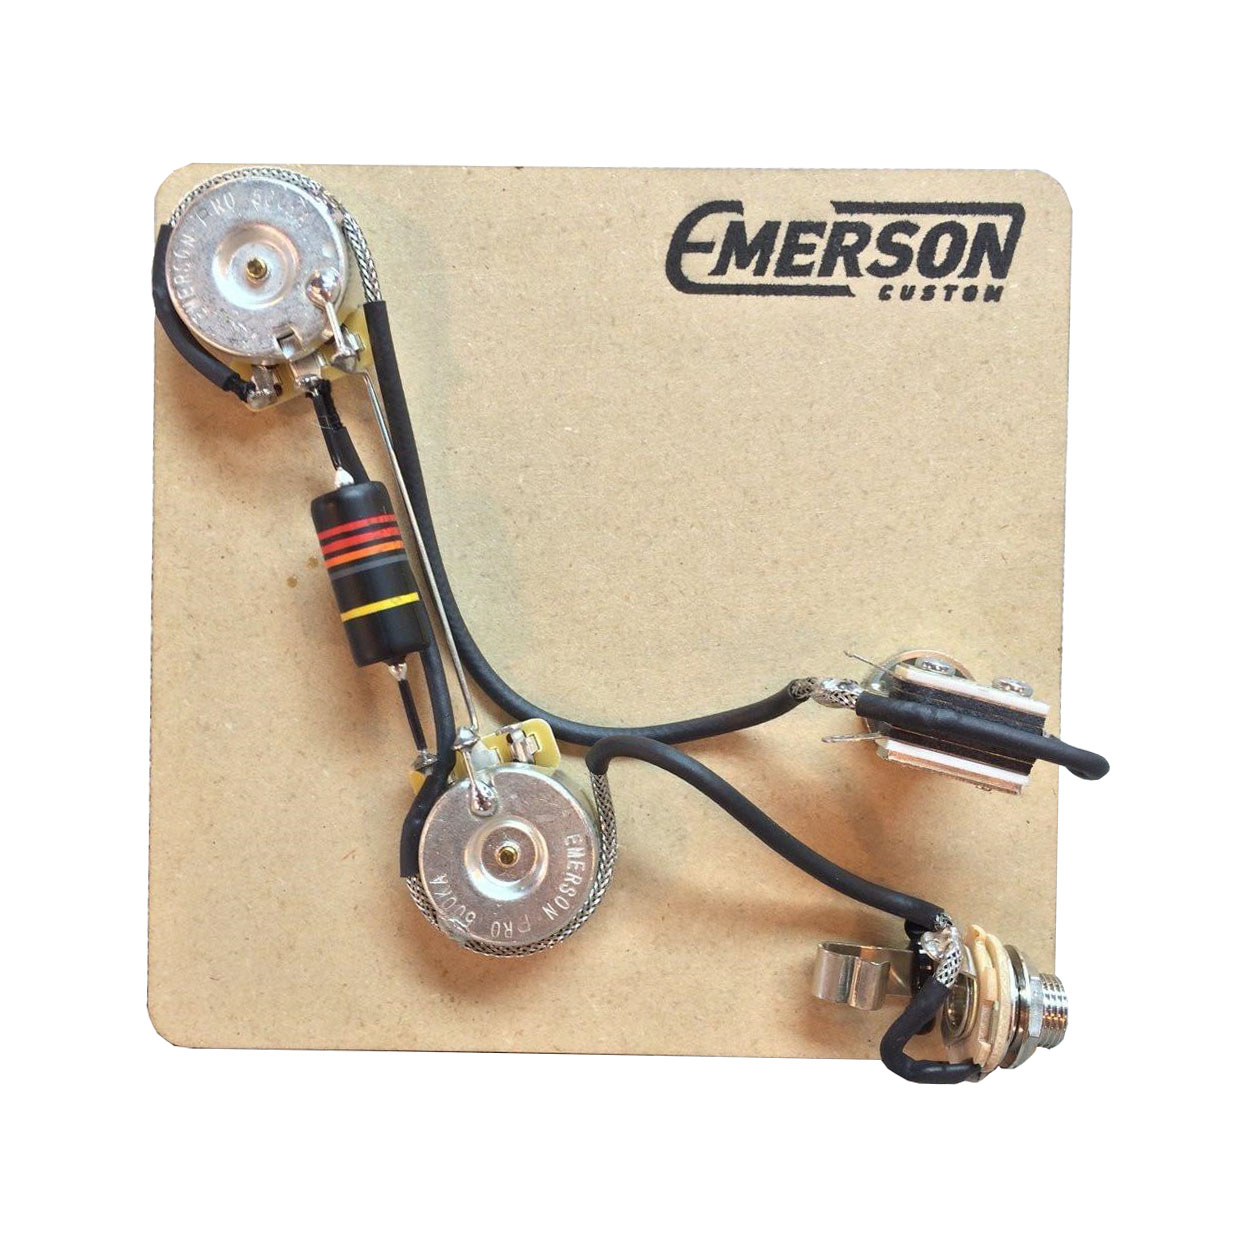 emerson custom 2 knob prewired kit for prs guitars solo. Black Bedroom Furniture Sets. Home Design Ideas